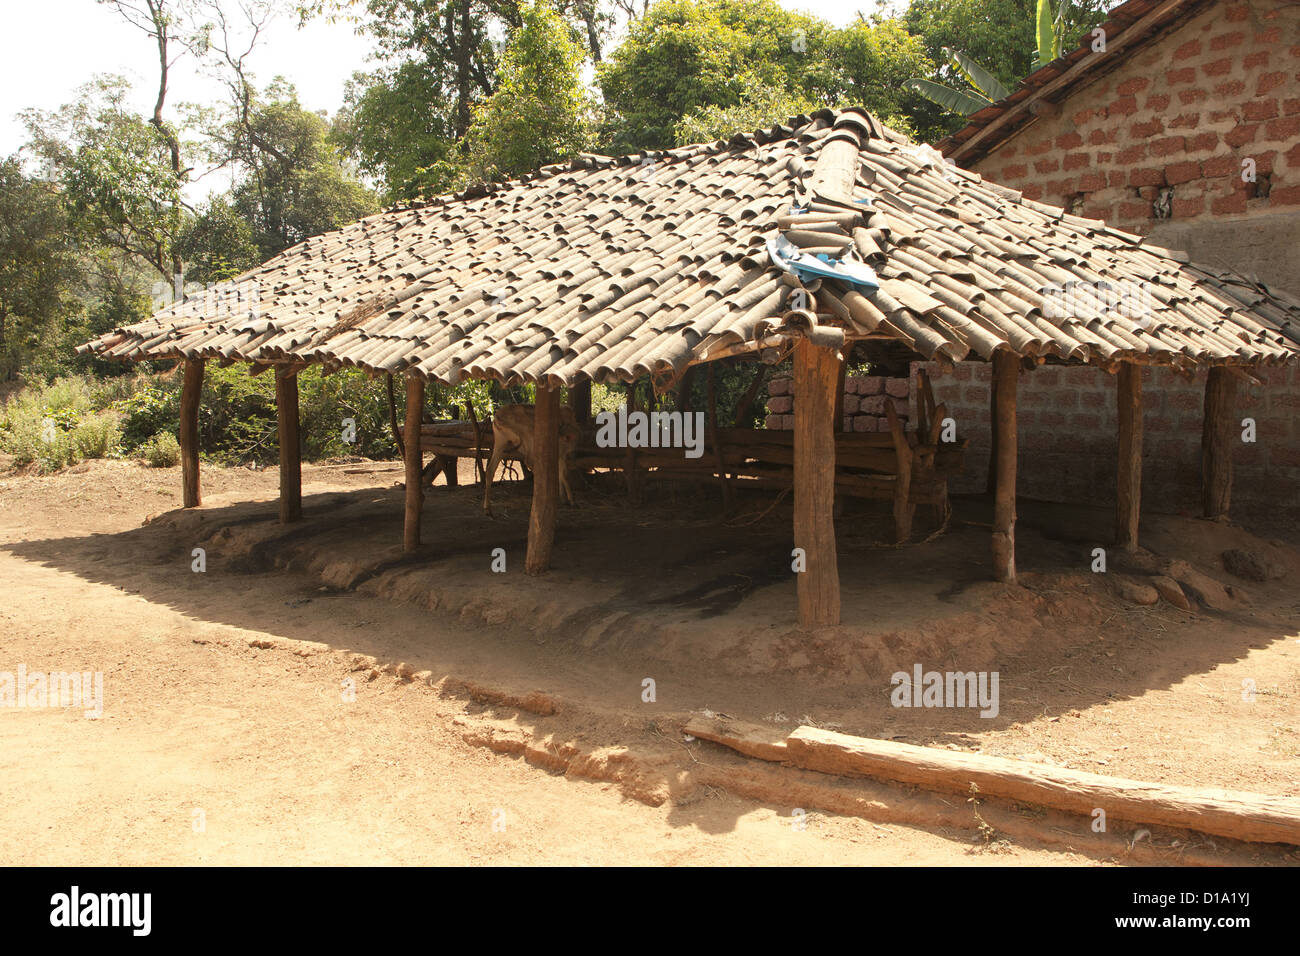 House Layout Design India Cow Shed India Stock Photos Amp Cow Shed India Stock Images